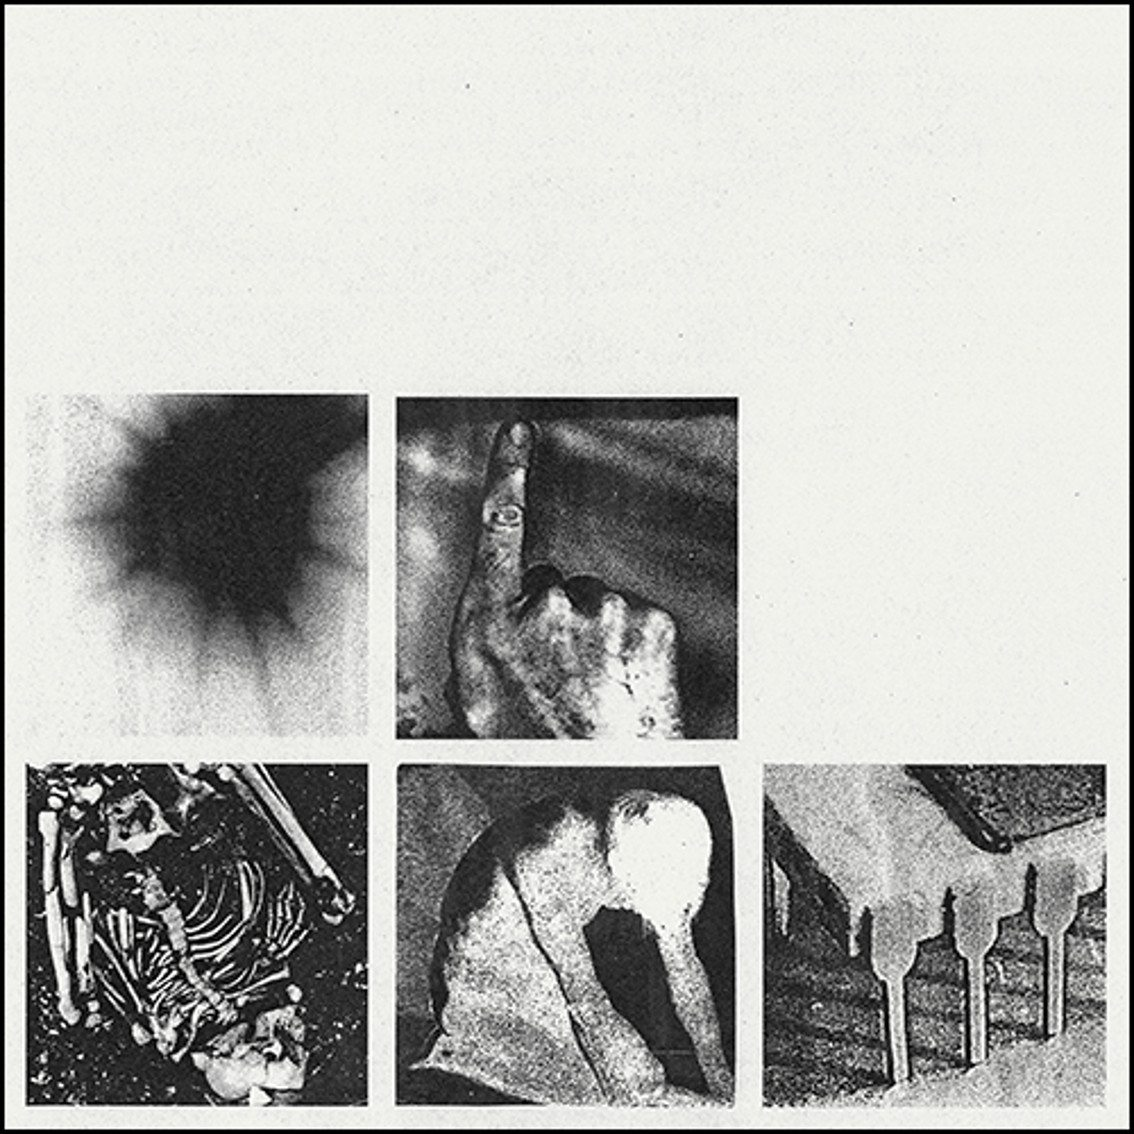 Check out teaser new Nine Inch Nails album'Bad Witch' - order it here on CD and vinyl